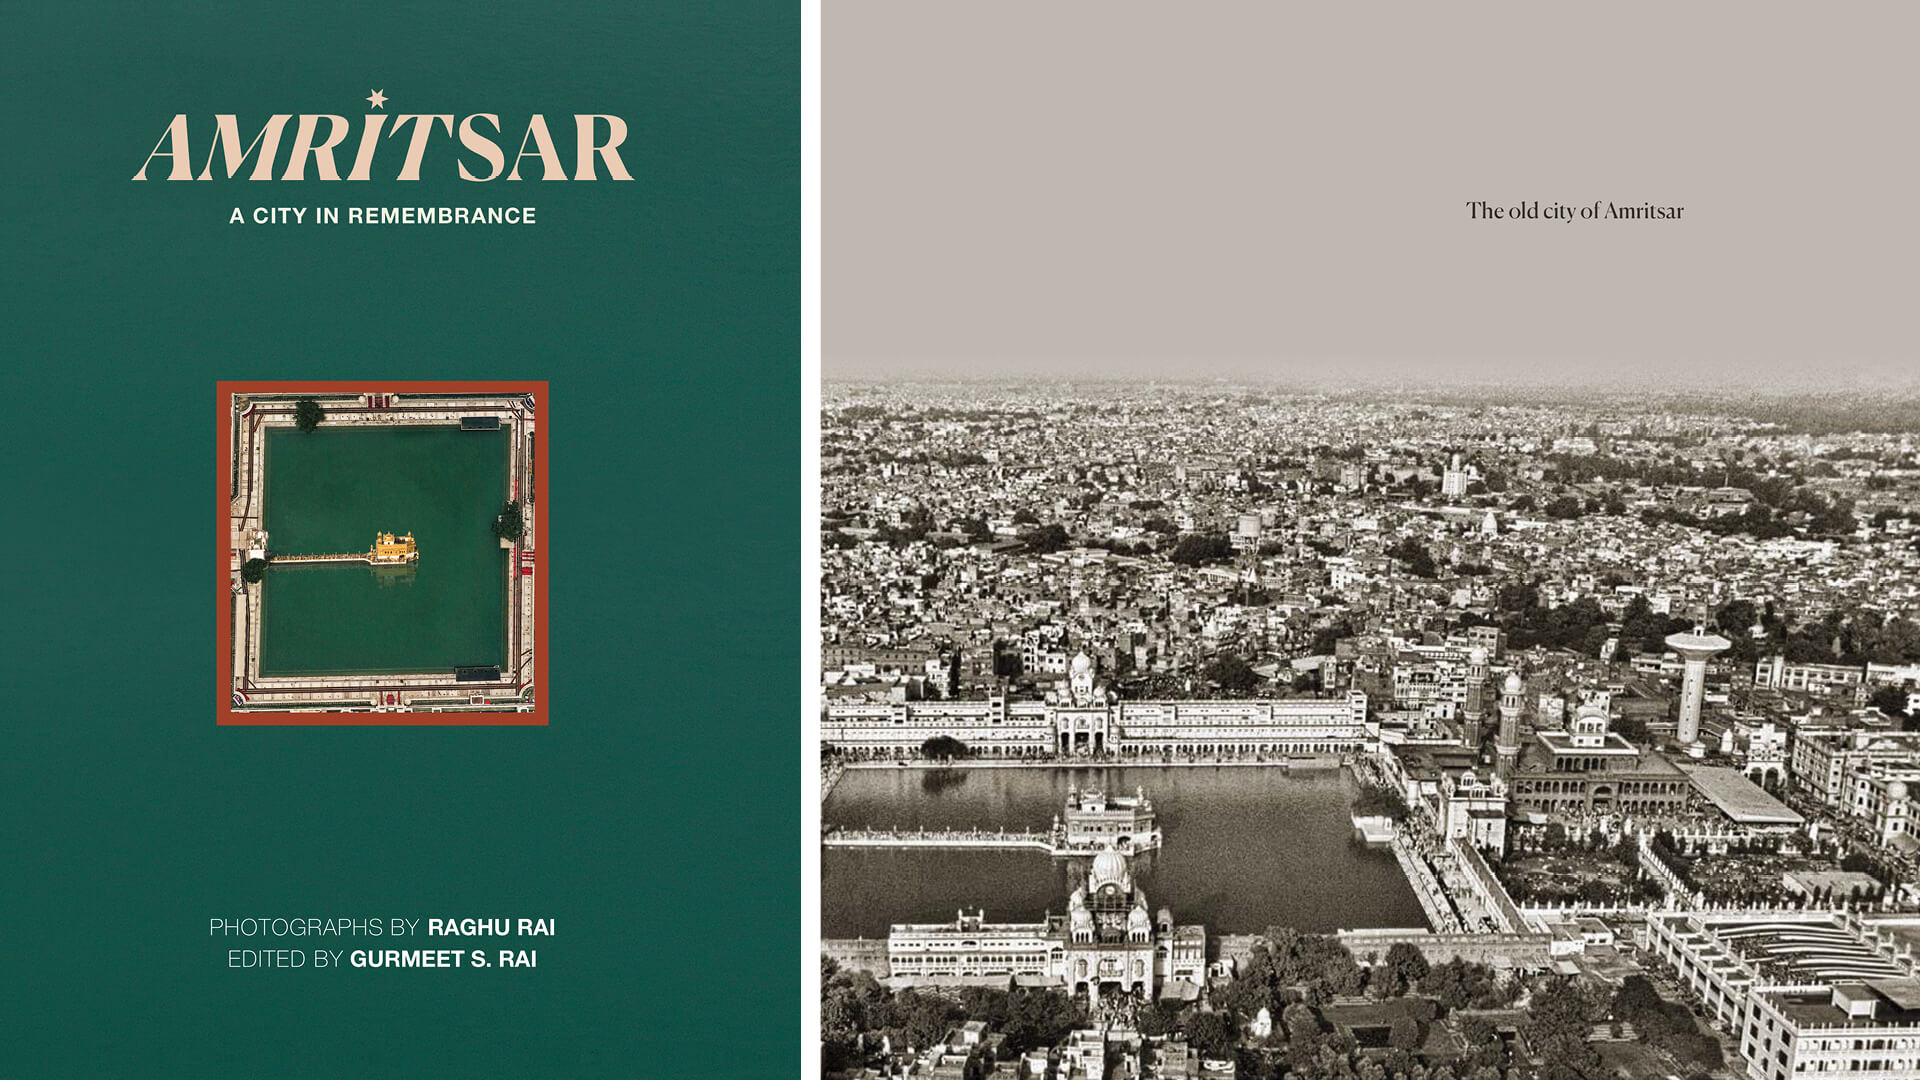 Gurmeet S Rai's latest book combines refined essay and sublime photography